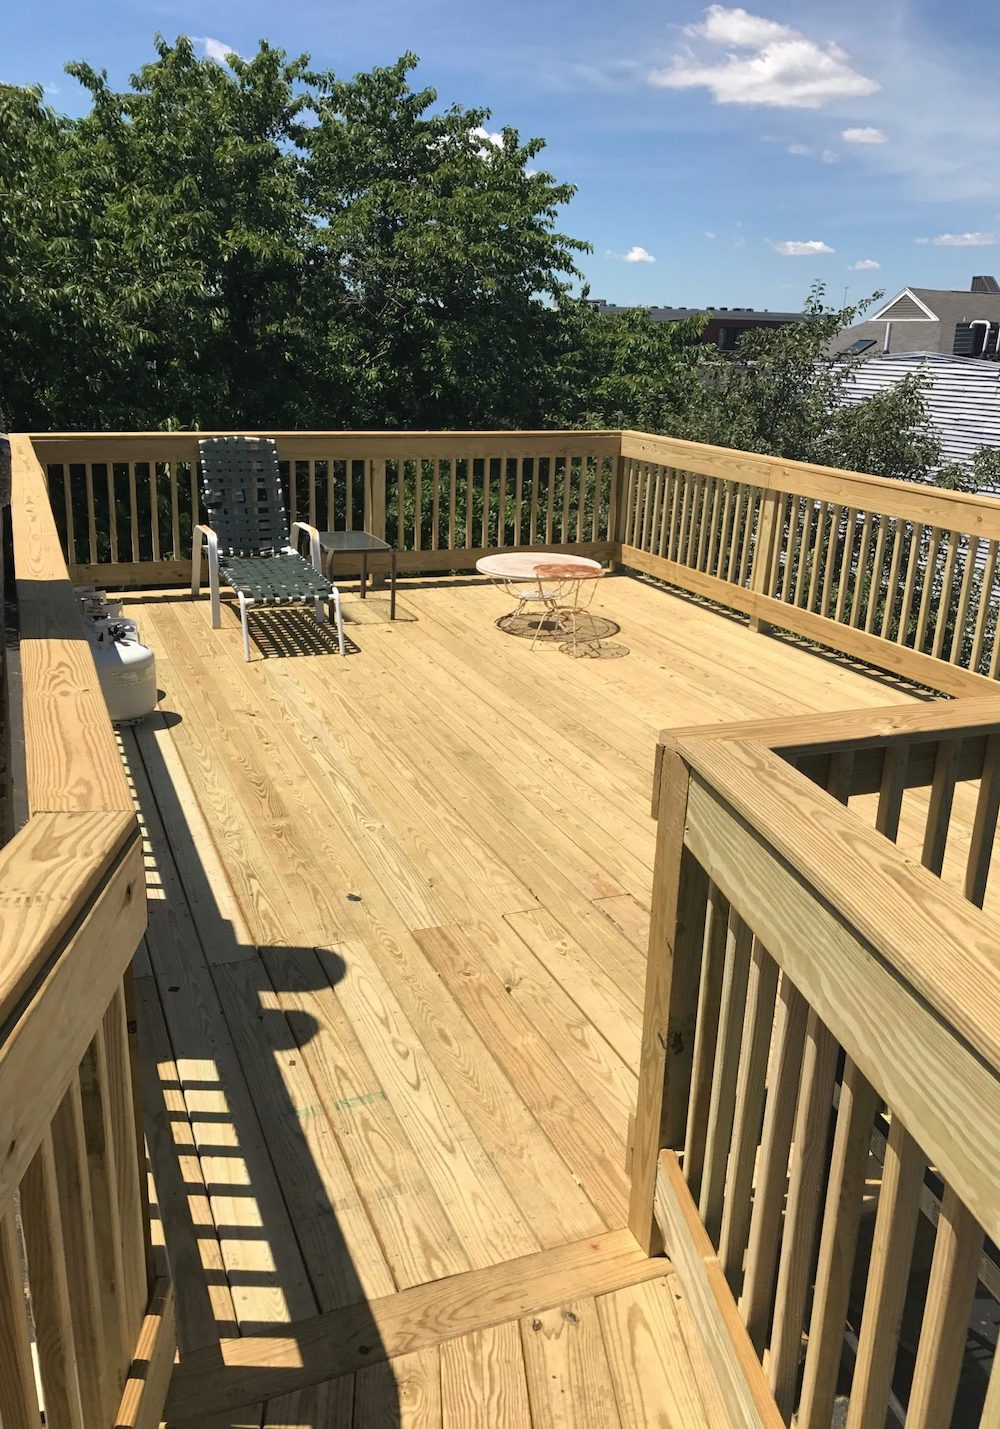 roof_deck__gutter_solutions_and_home_improvements_https-::g.page:guttersolutionshomeimprovements?share_(850)_776-1782.jpg